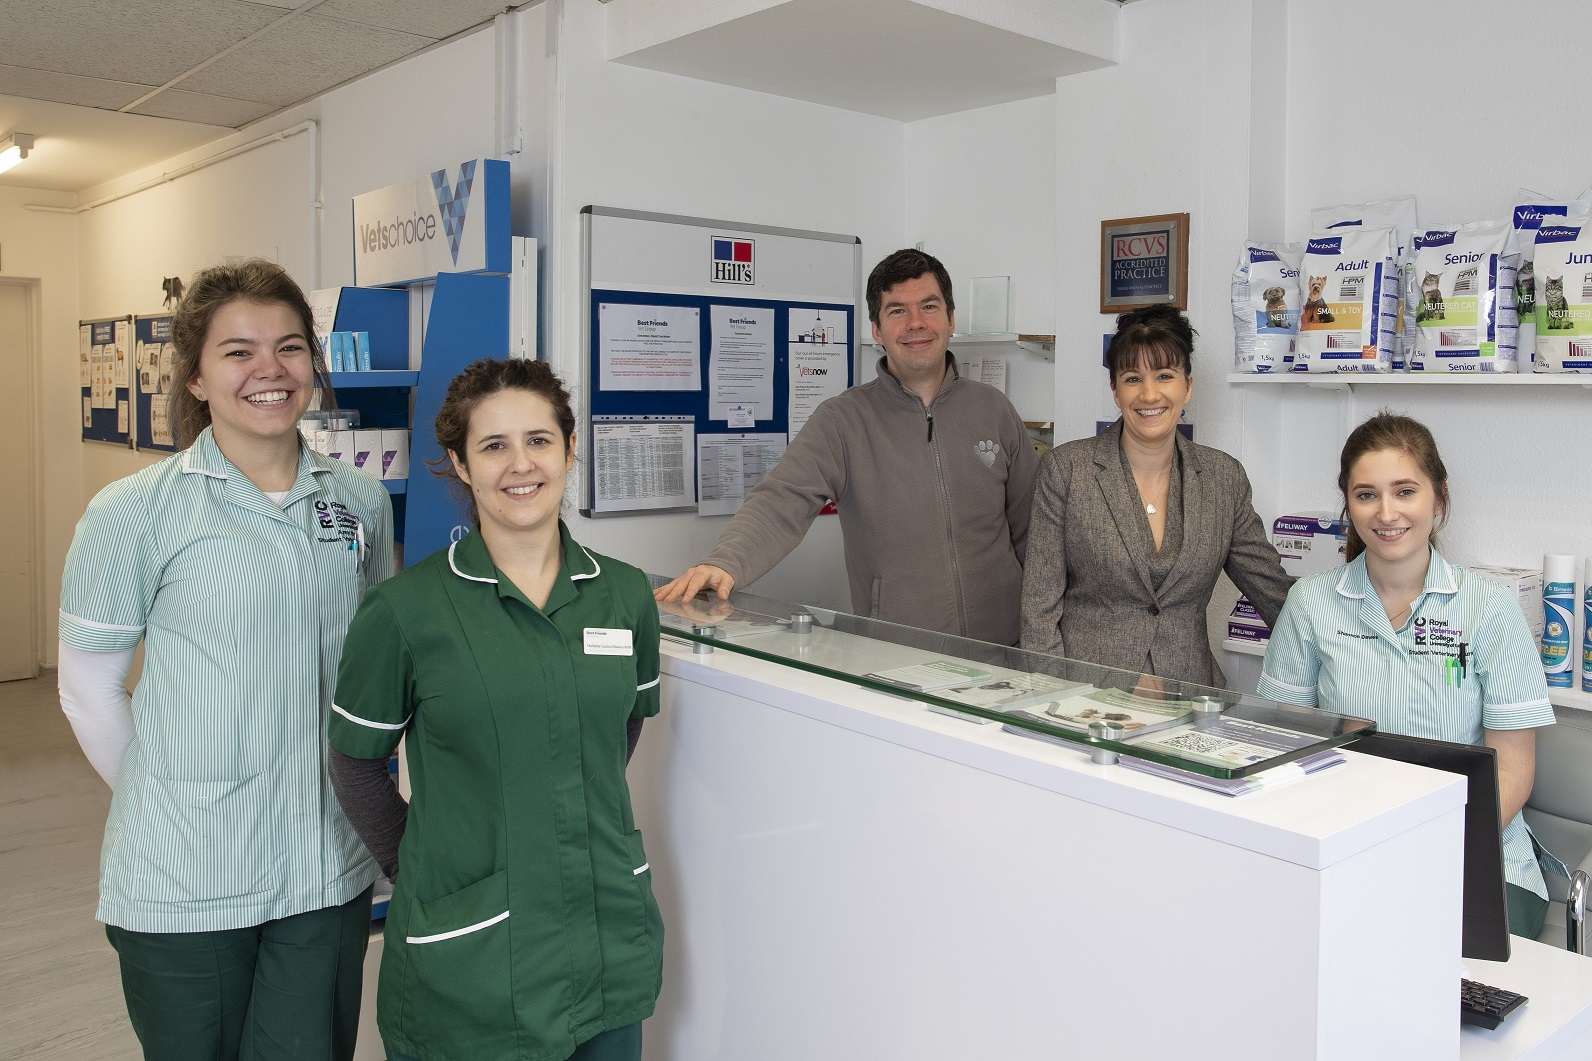 The team at Best Friends Veterinary Groups Oak Hill practice